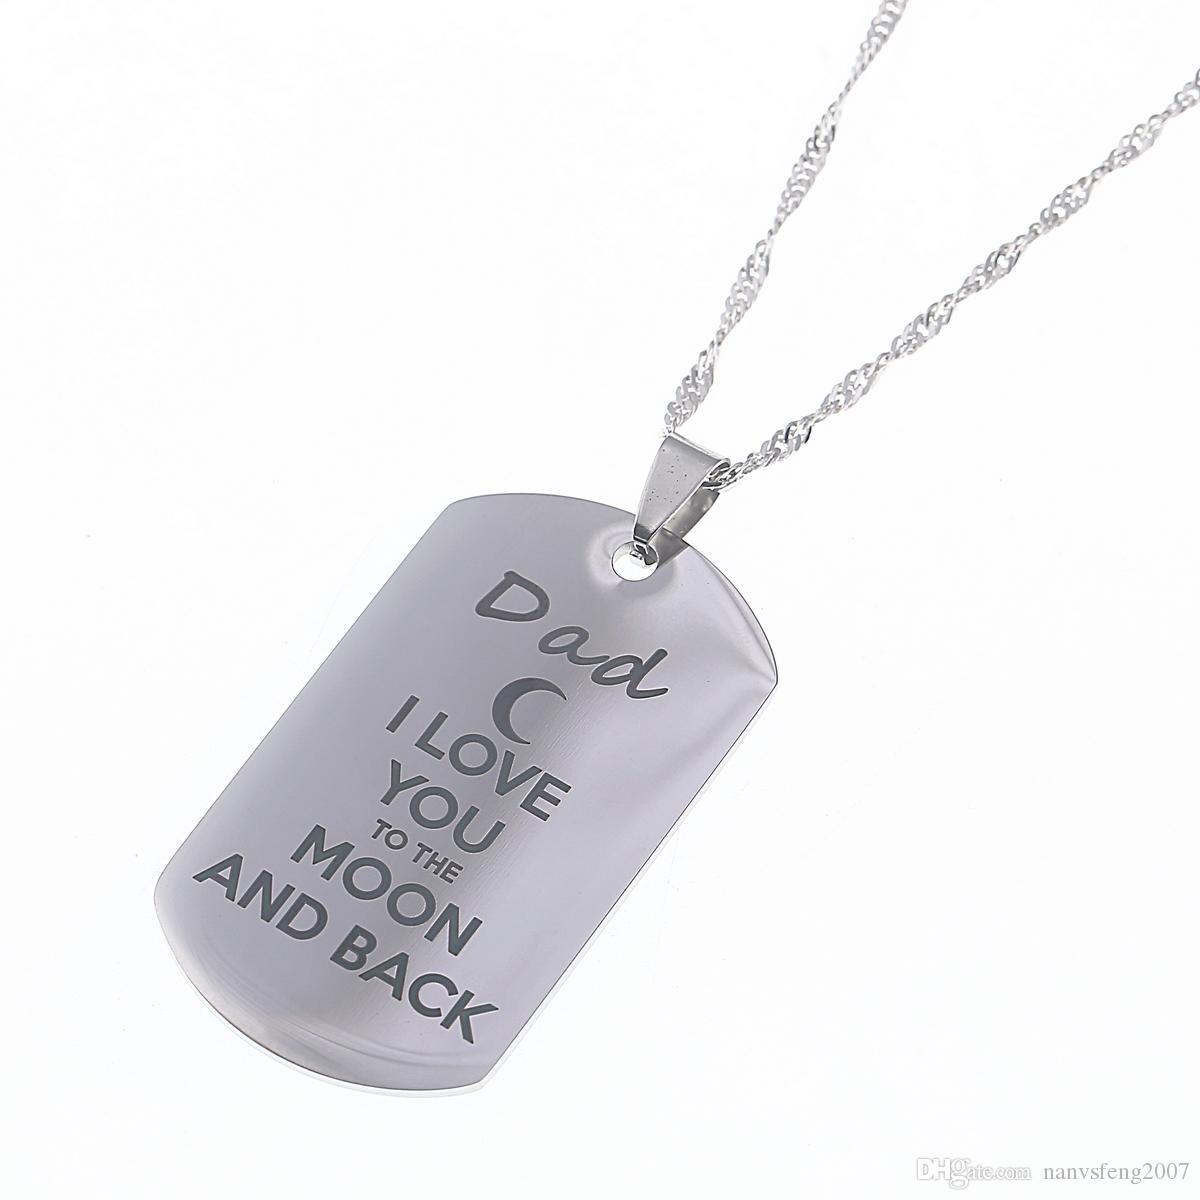 "Stainless Steel Pendant Necklace "" I Love You To The Moon and Back ""Dog Tag Necklace Military Mens Jewelry Family Gift"